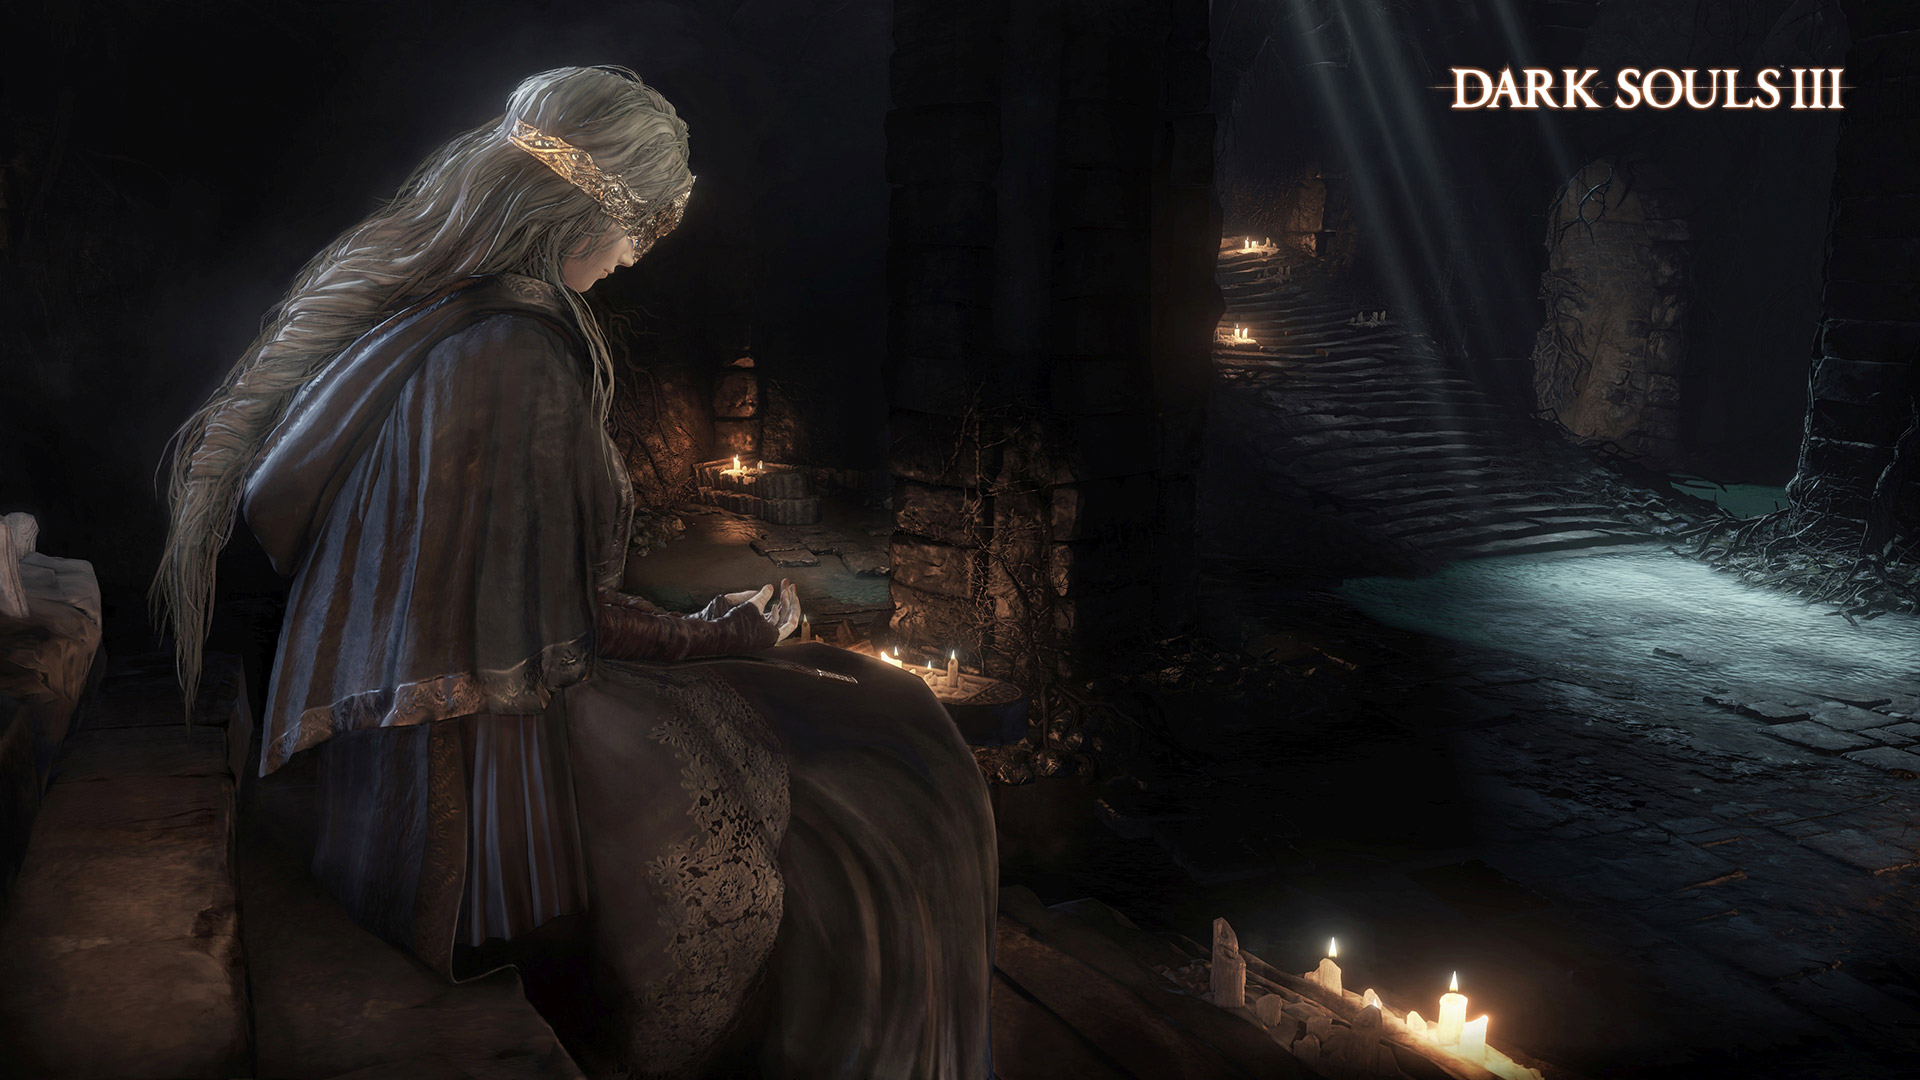 Dark Souls III Wallpaper in 1920x1080